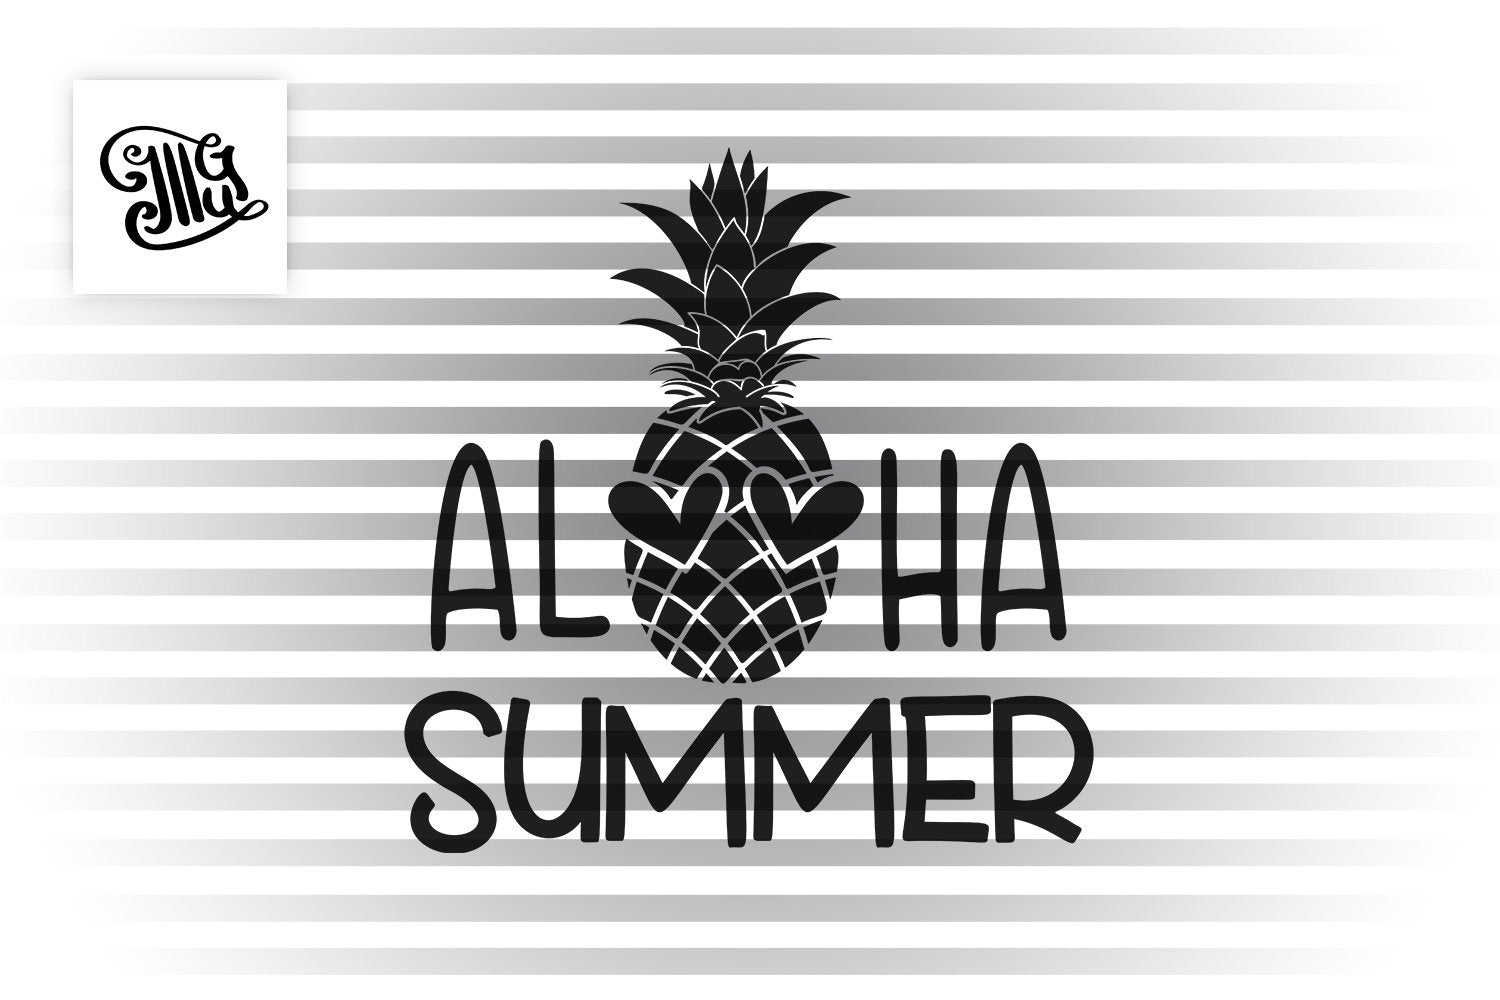 Aloha Summer SVG, Aloha Pineapple SVG, Pineapple Quote SVG, Pineapple With Sunglasses Clipart, Tropical Pineapple PNG, Vacation Sublimation Images Aloha Summer SVG, Aloha Pineapple SVG, Pineapple Quote SVG, Pineapple With Sunglasses Clipart,-by Illustrator Guru